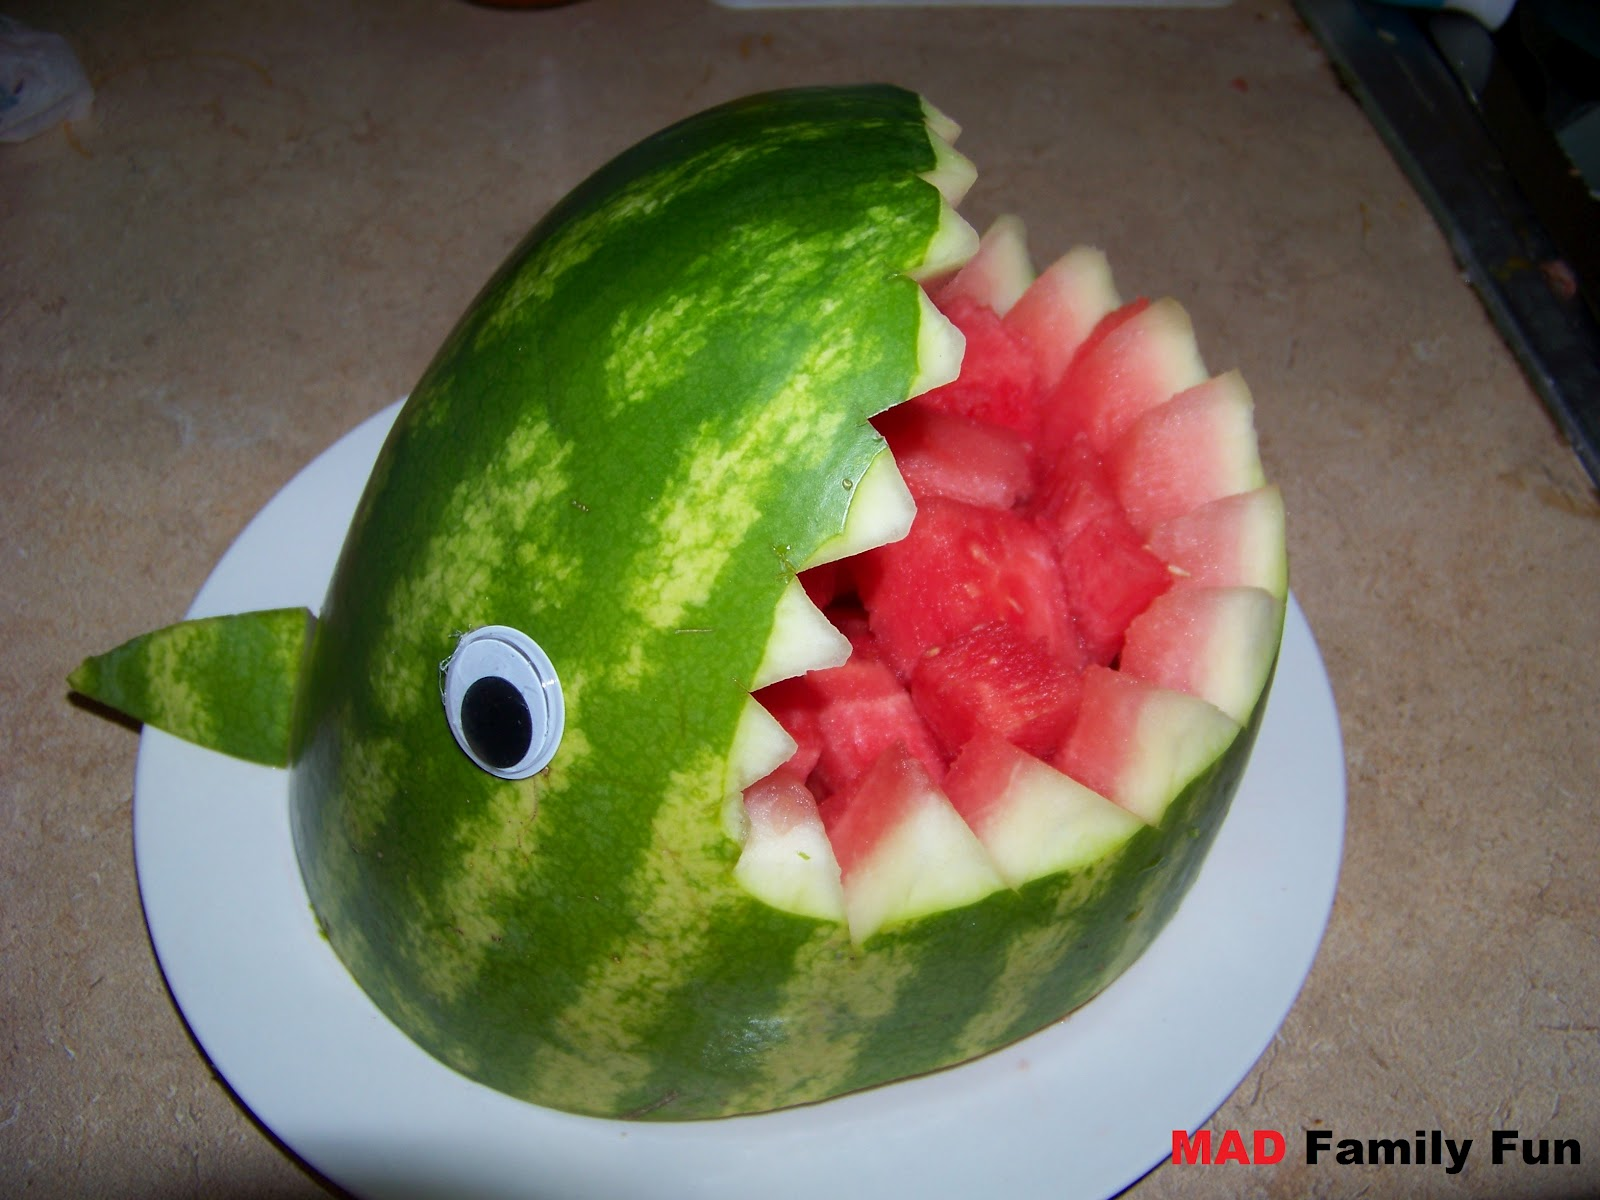 Mad family fun shark watermelon anyone can make this